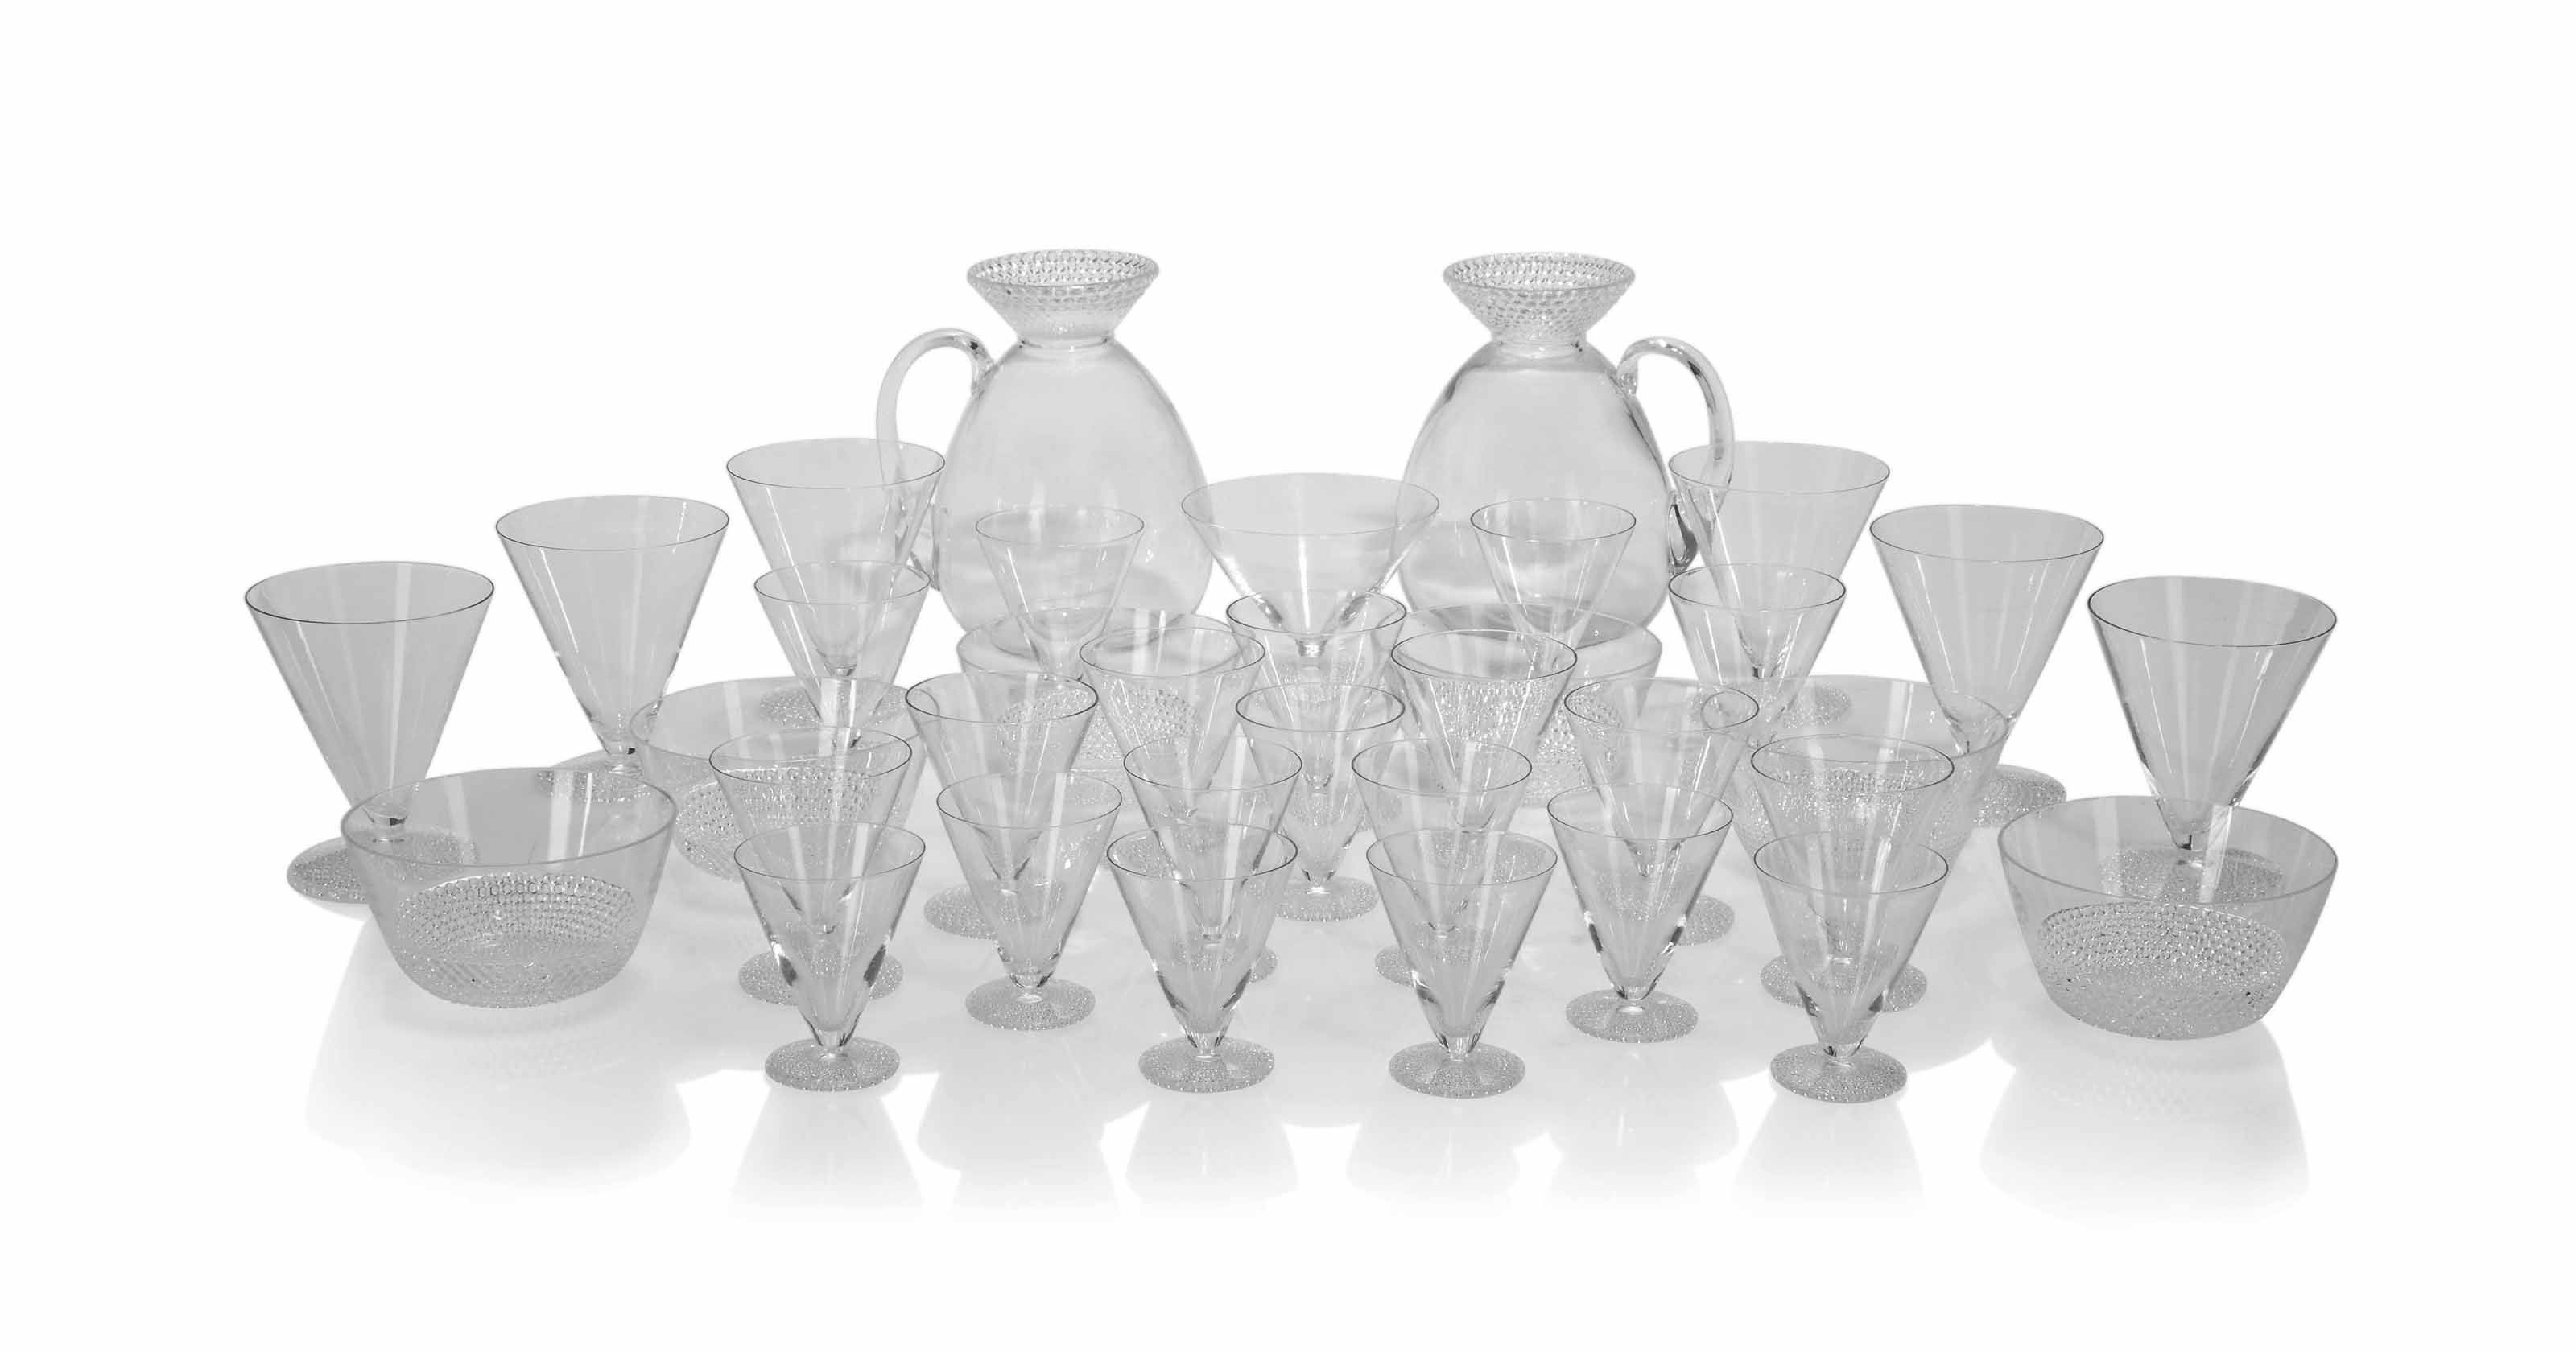 'TOKYO' A LALIQUE CLEAR GLASS